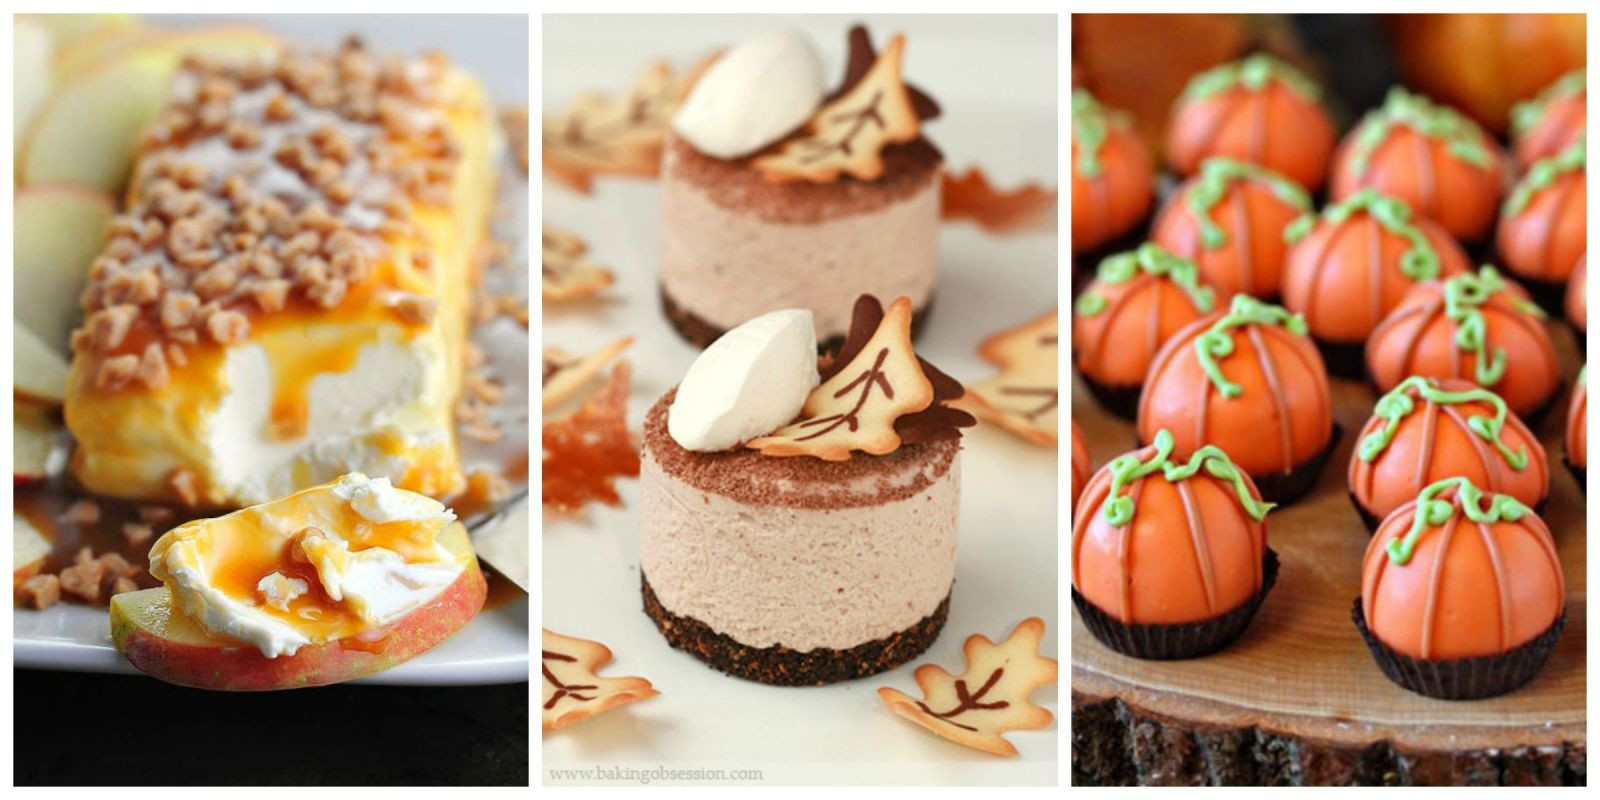 Recipes For Fall Desserts  35 Easy Fall Dessert Recipes Best Treats for Autumn Parties